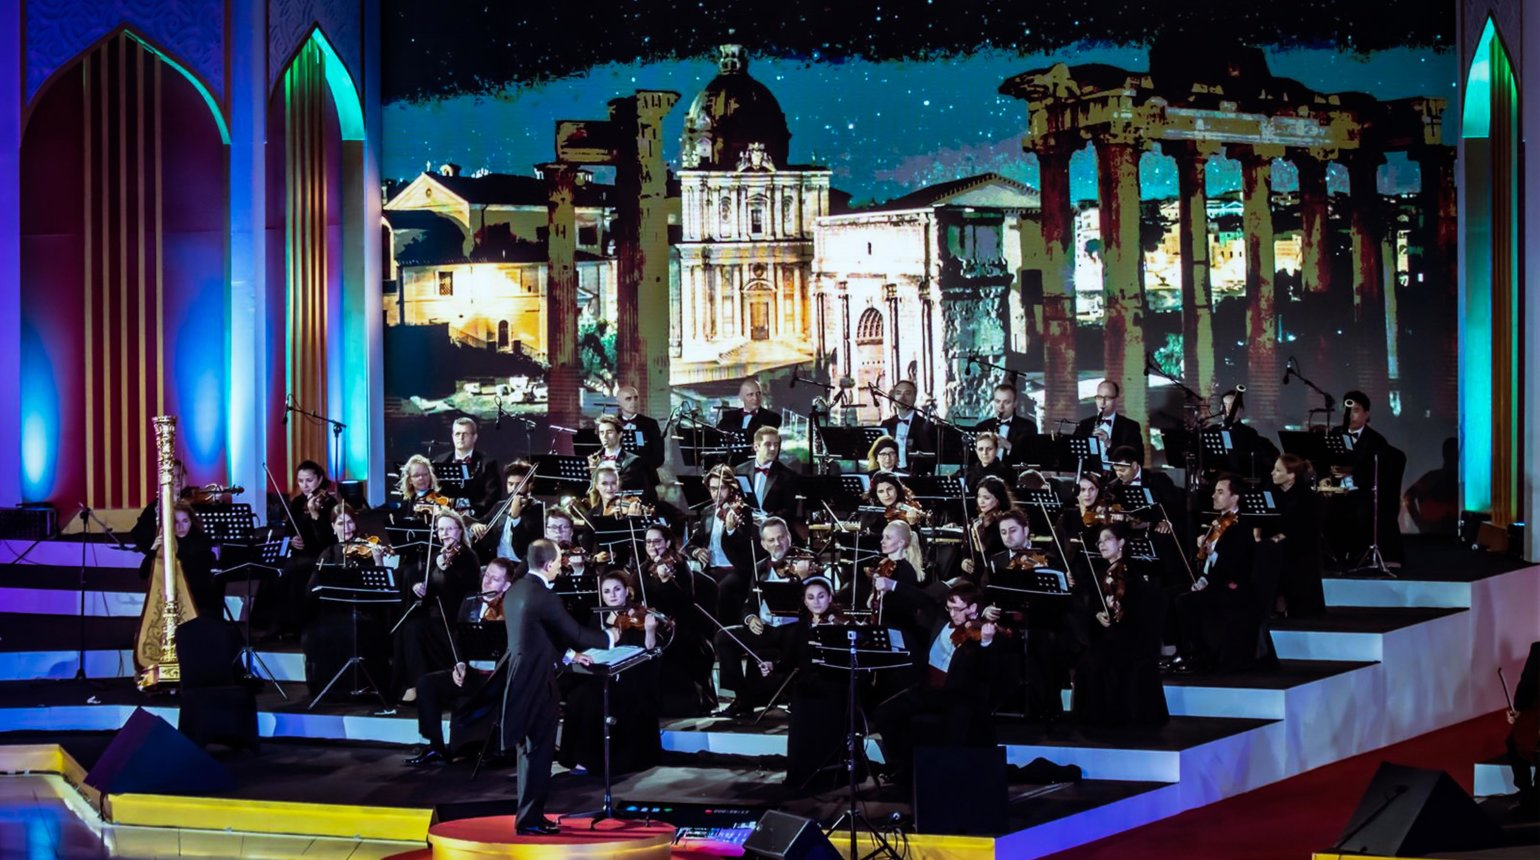 <p>The orchestra performs a diverse range of musical styles designed to cater for a variety of audiences. </p>